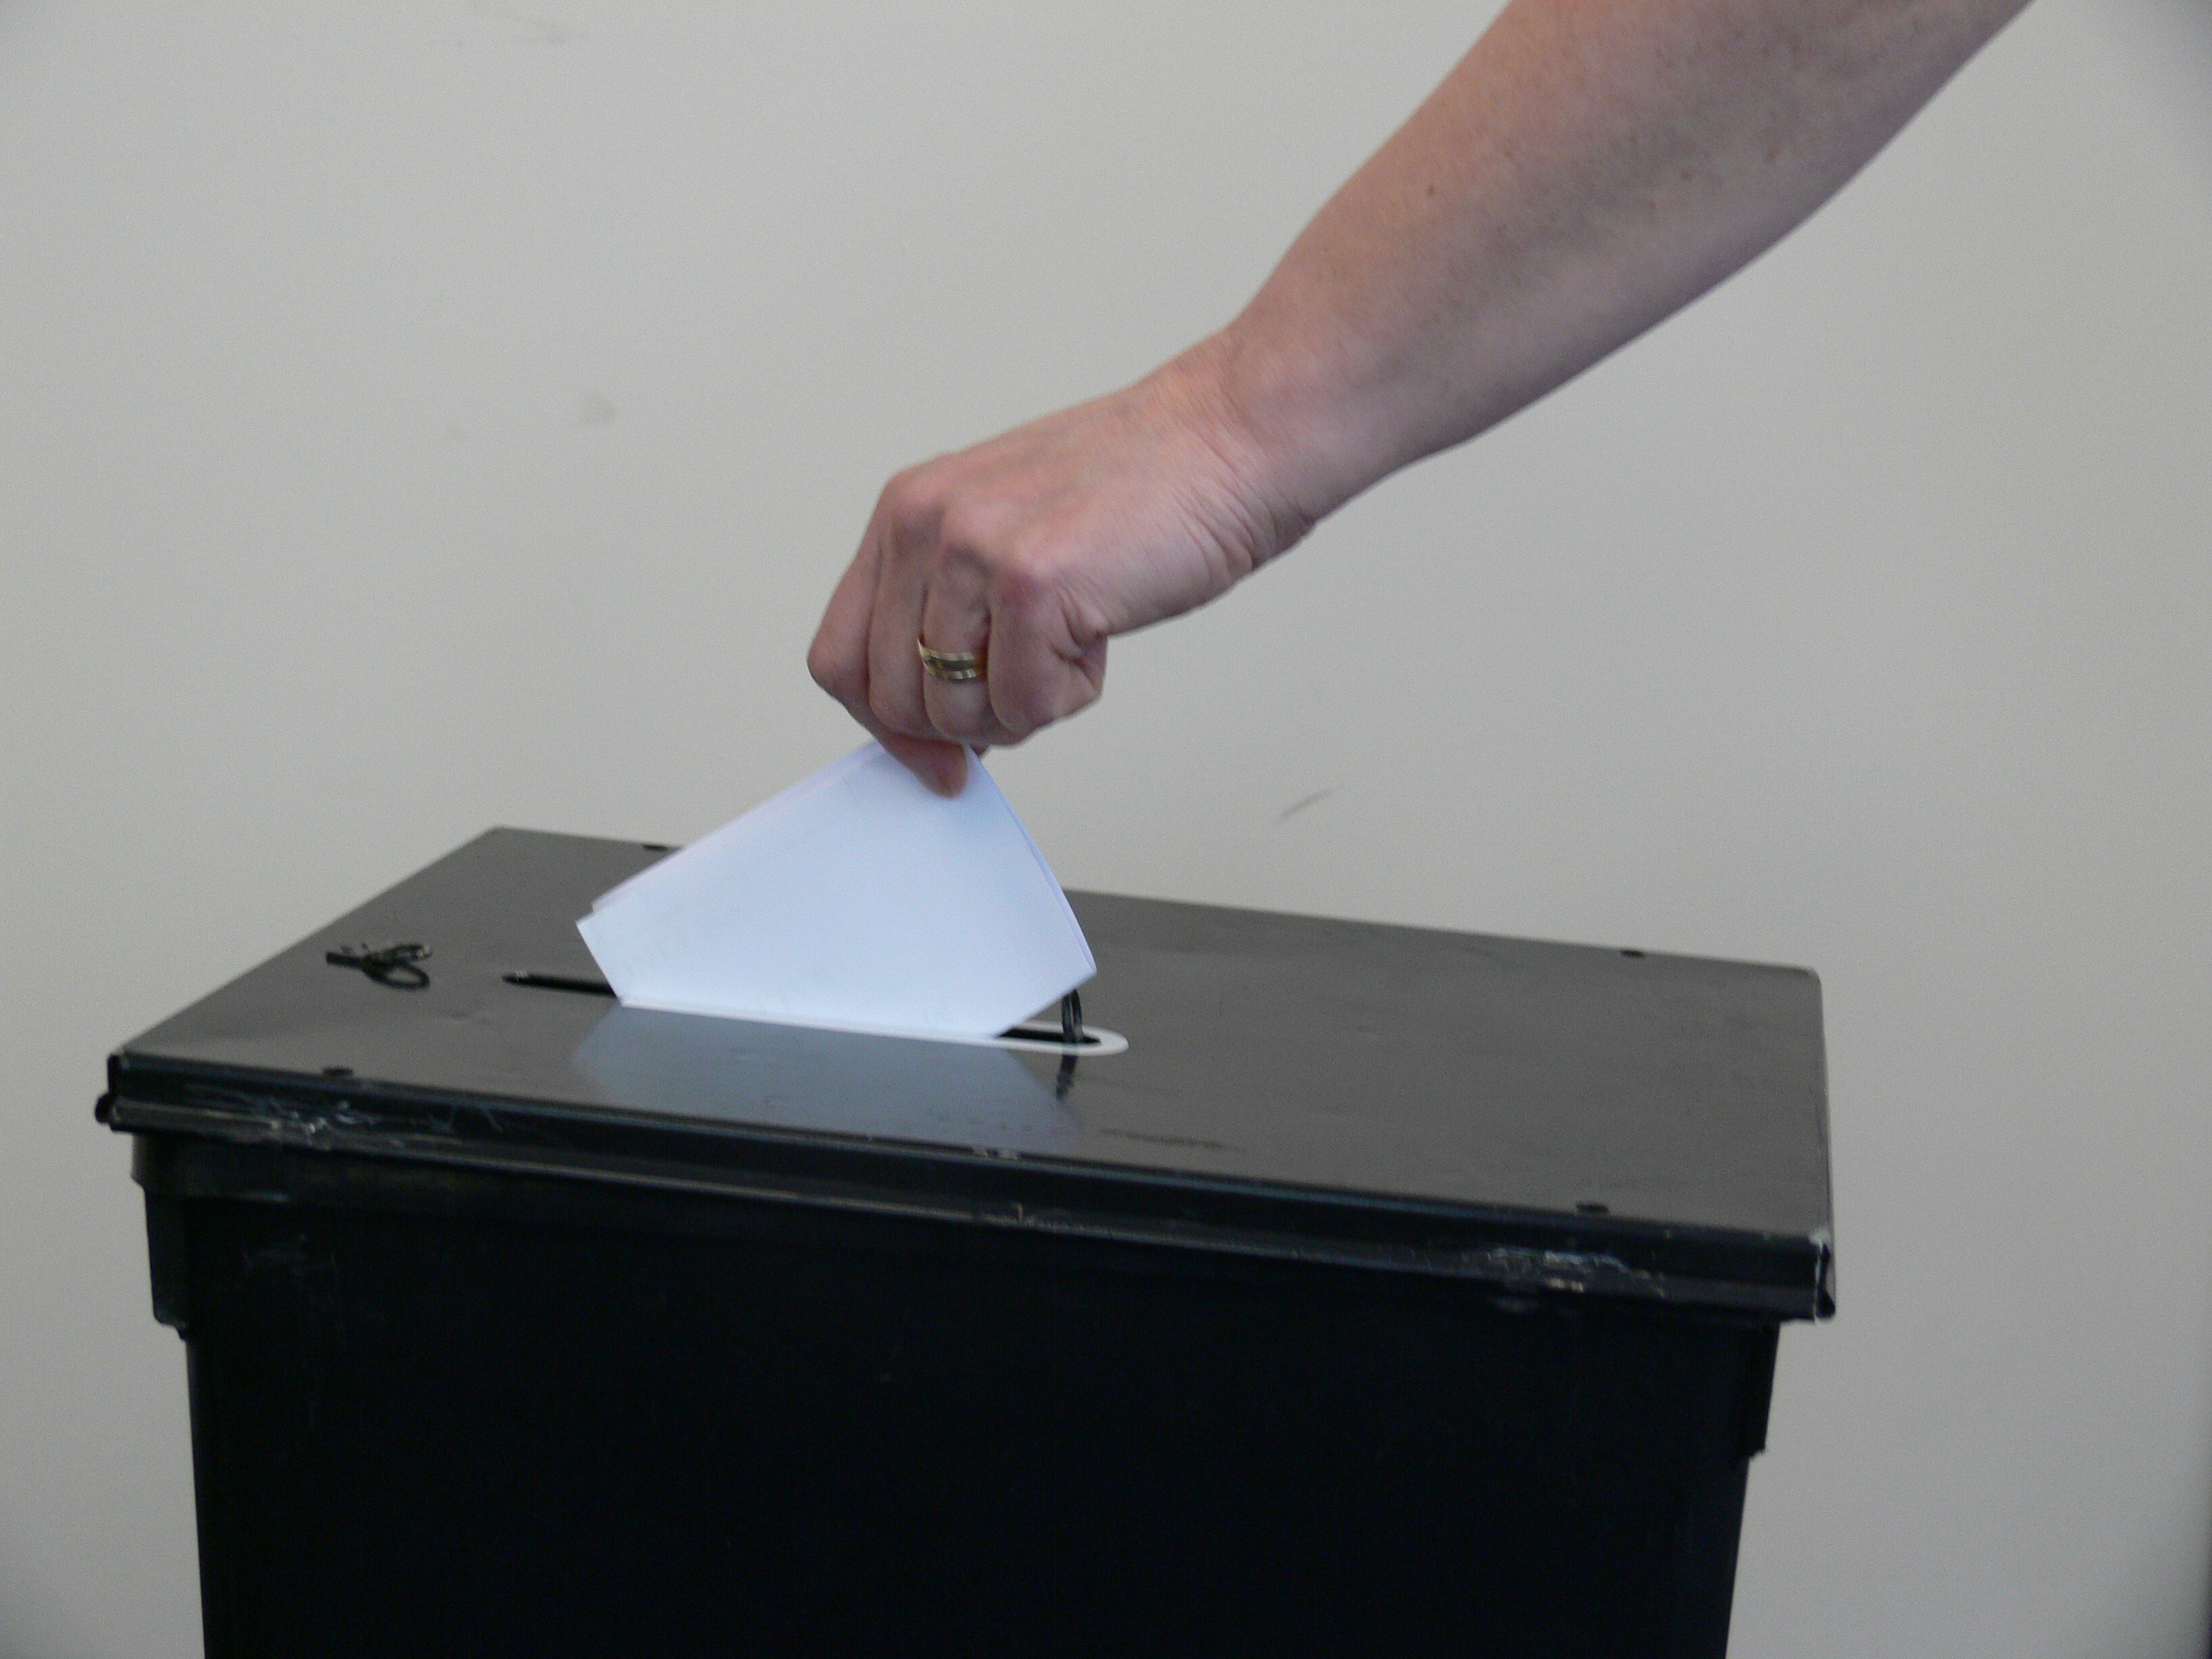 Maidstone polling district review underway